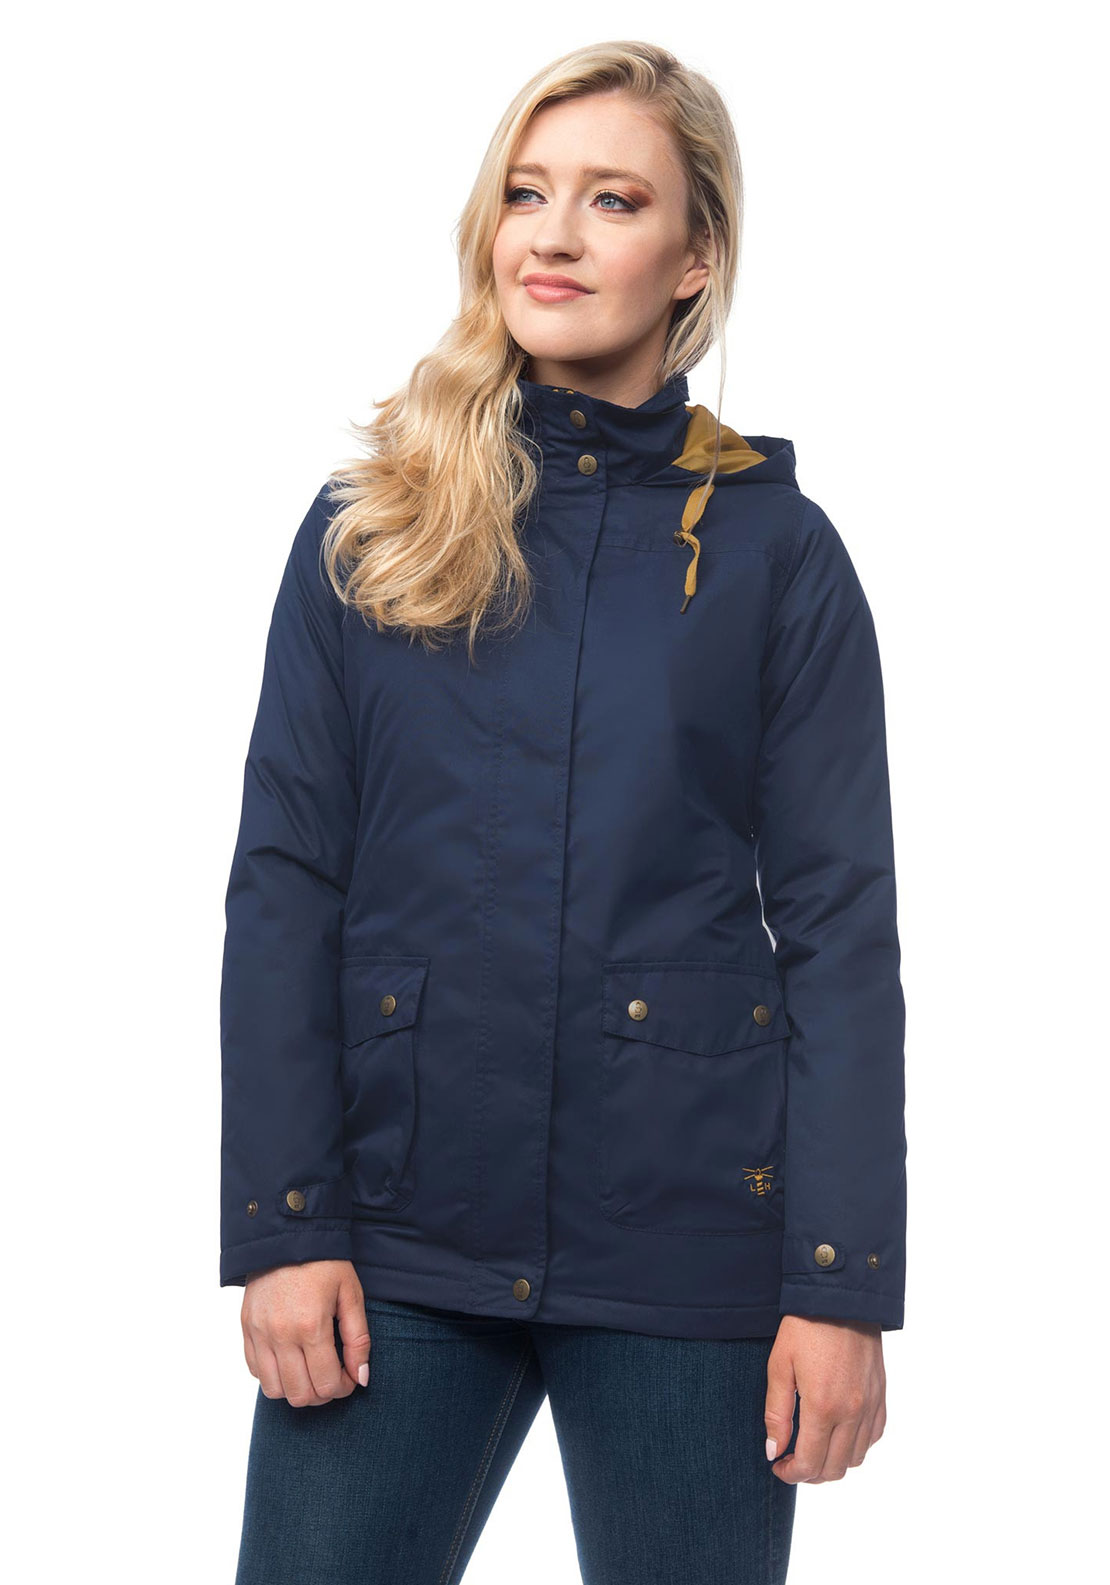 Lighthouse Alyssa Waterproof Hooded Jacket, Navy